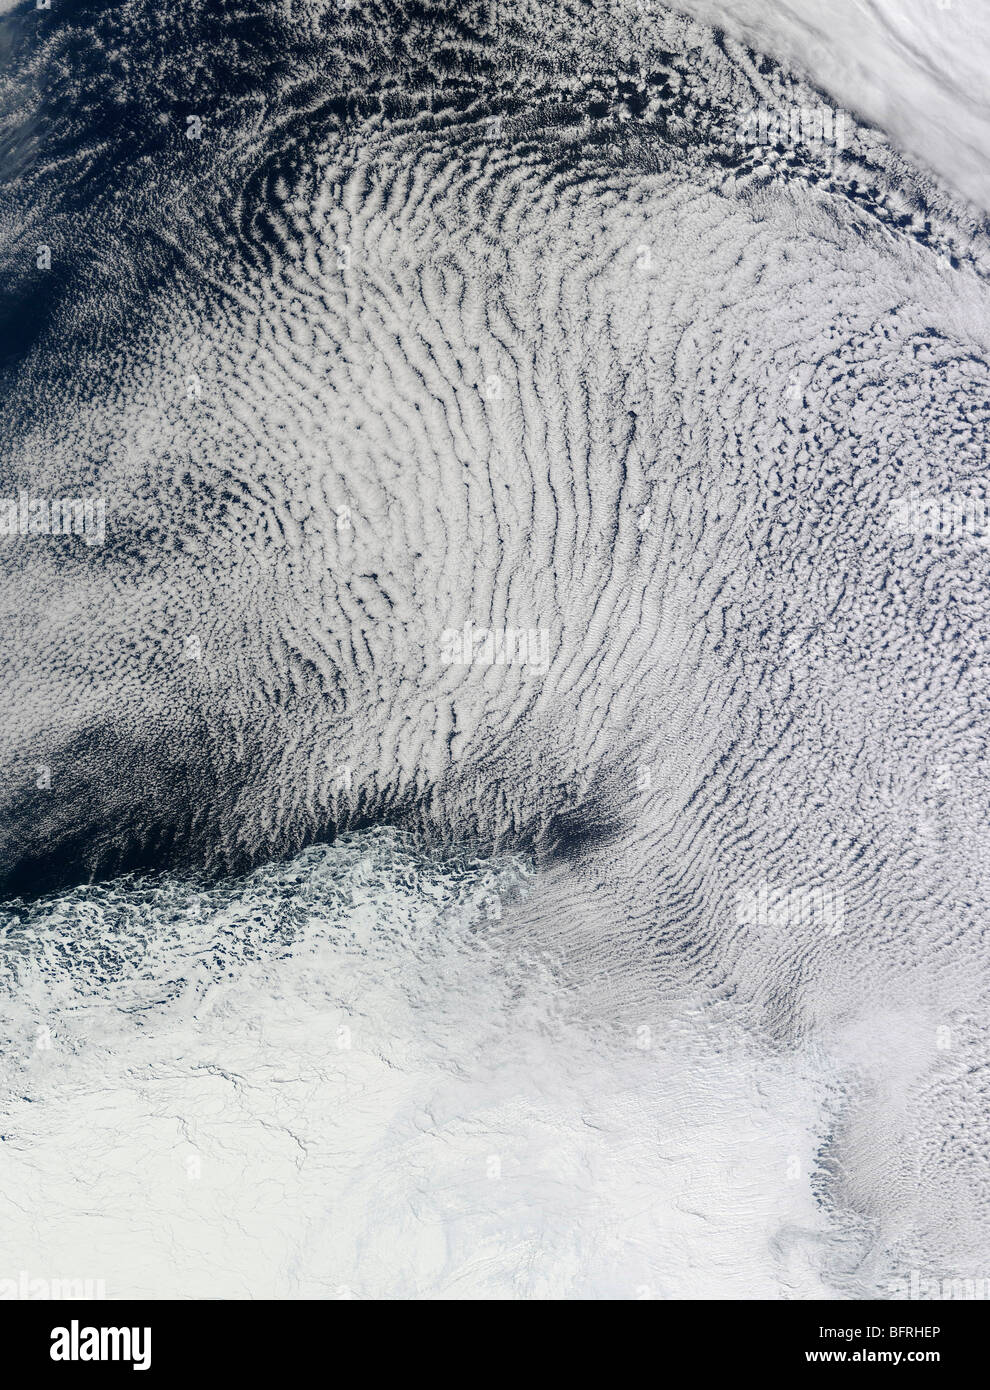 September 10, 2009 - Cloud patterns and sea ice in the Southern Ocean. - Stock Image